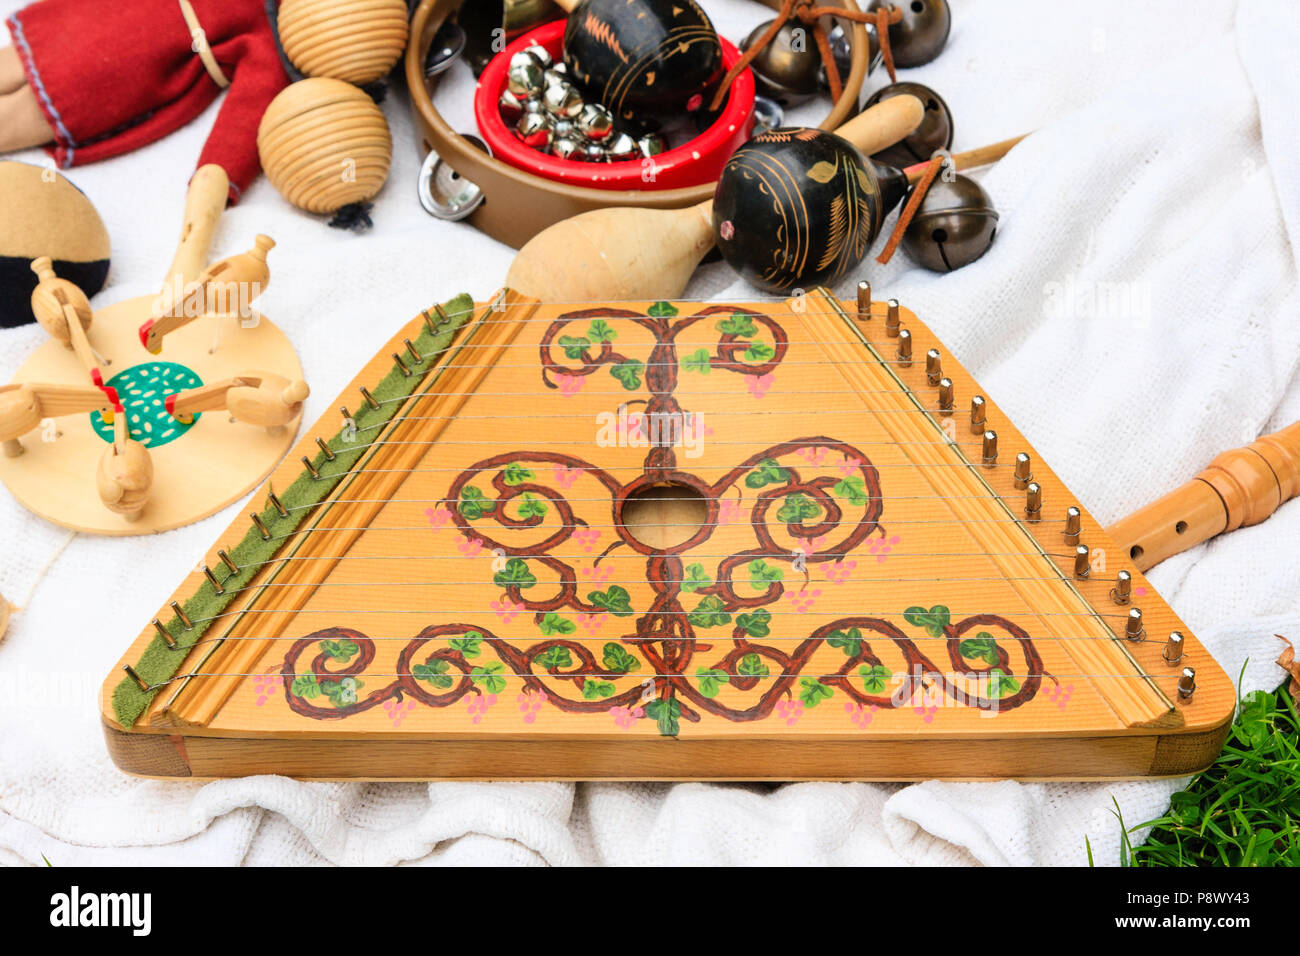 Reenactment event. Reconstructed medieval musical instrument, stringed plucked sultry, wooden box base with strings drawn across. - Stock Image